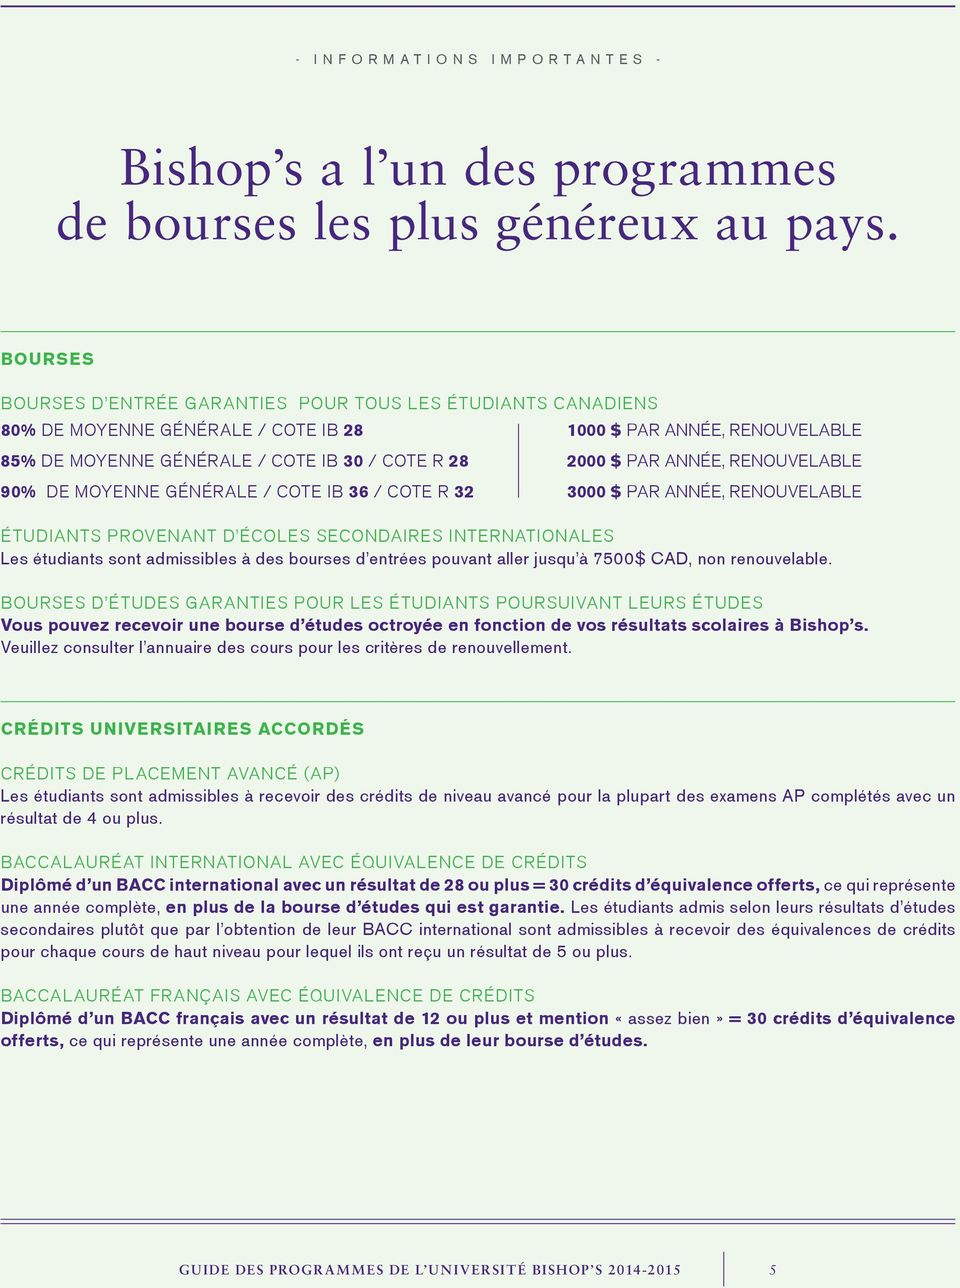 moyenne générale / Cote IB 36 / Cote R 32 2000 $ par année, renouvelable 3000 $ par année, renouvelable Étudiants provenant d écoles secondaires internationales Les étudiants sont admissibles à des